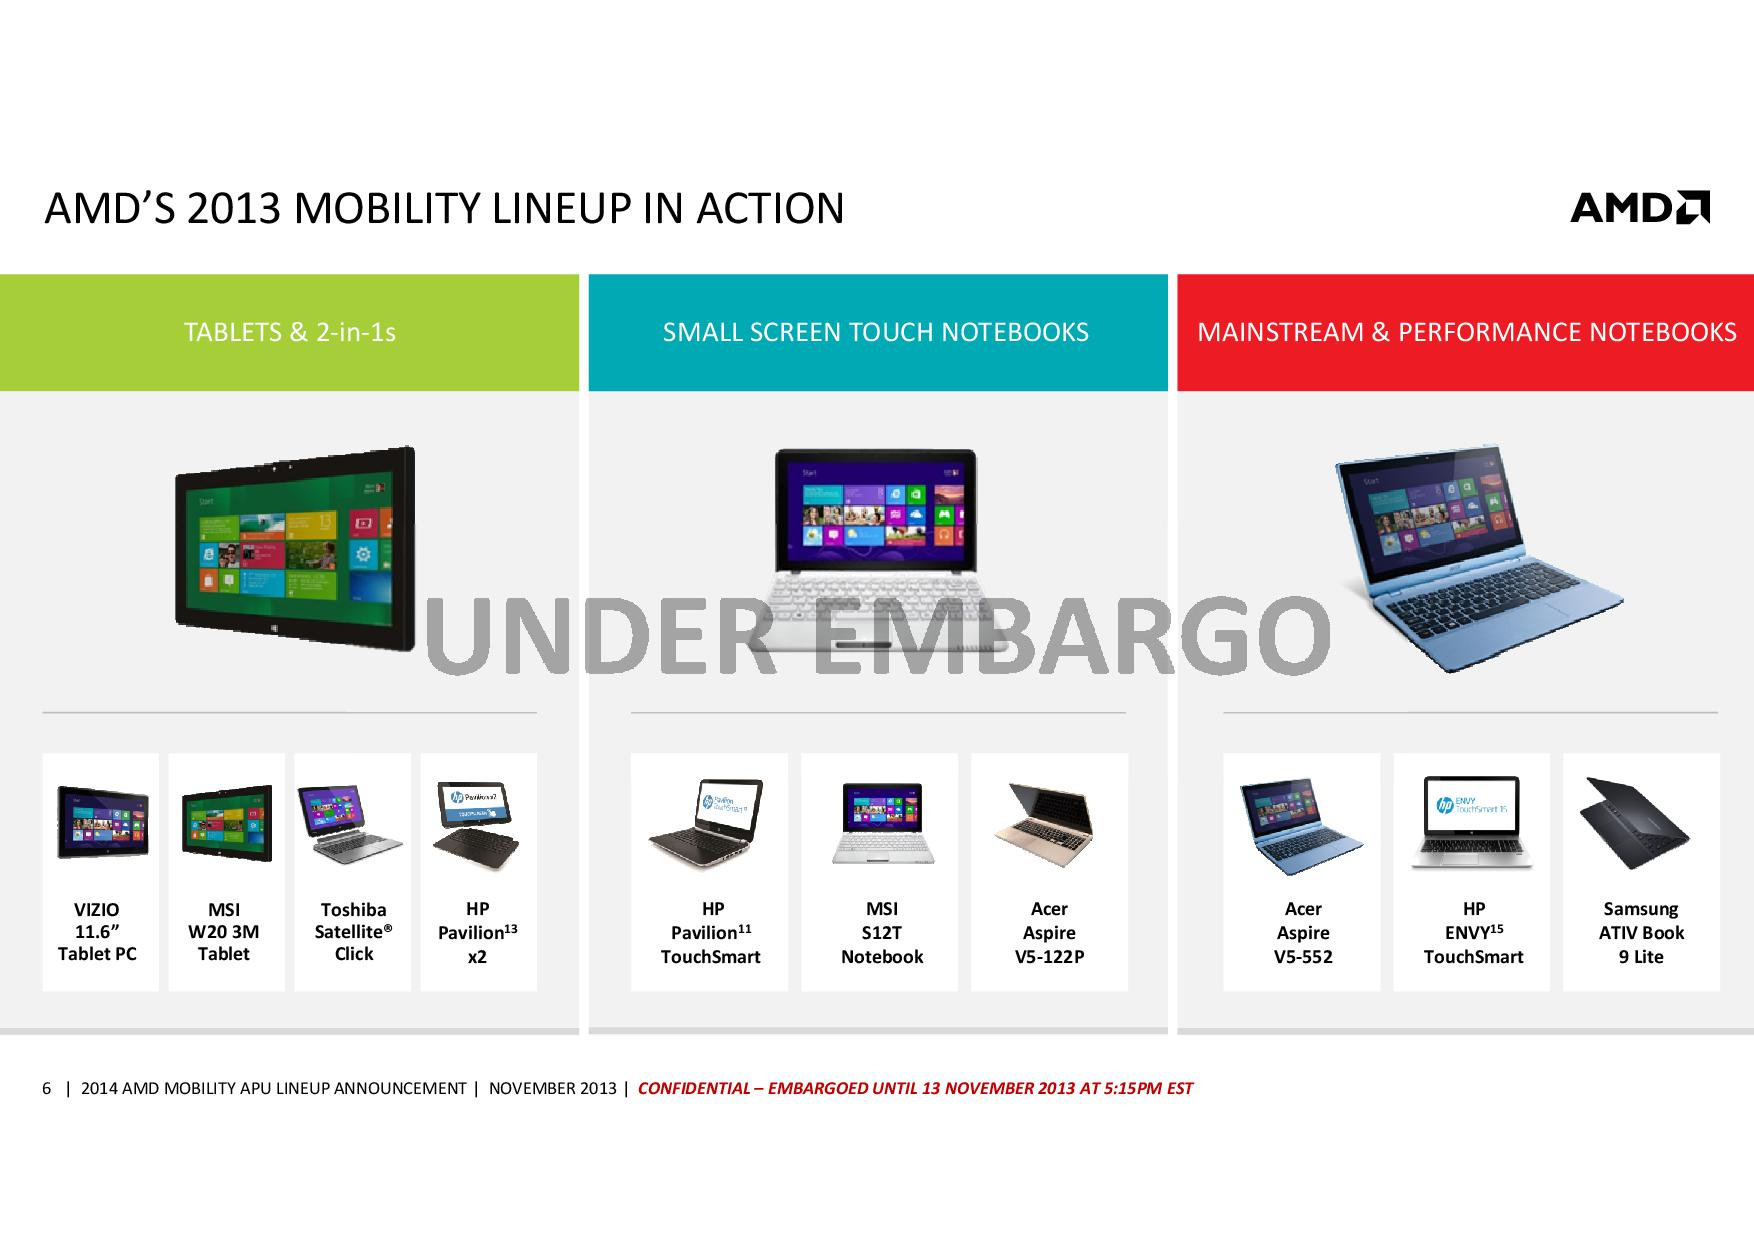 AMD Mobility APU Lineup Announcement Press Deck-006